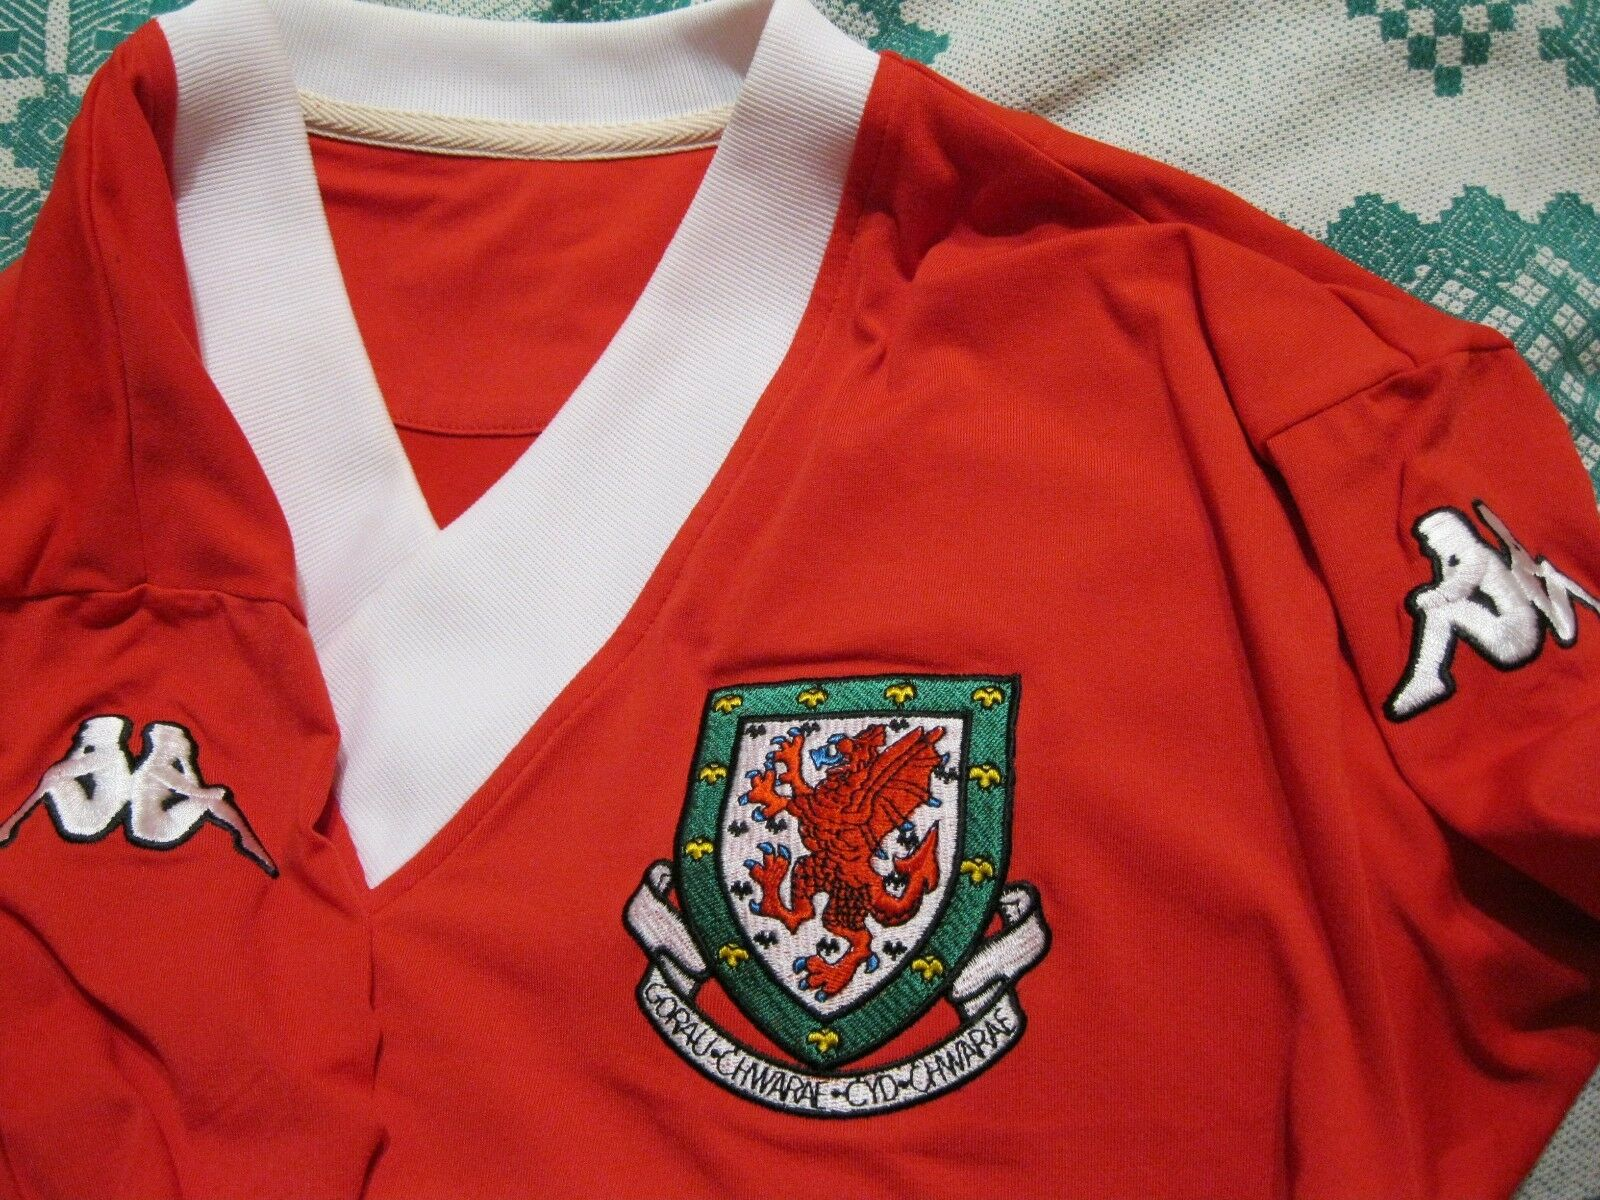 Wales national team 2006/2007 home Size XL Kappa jersey